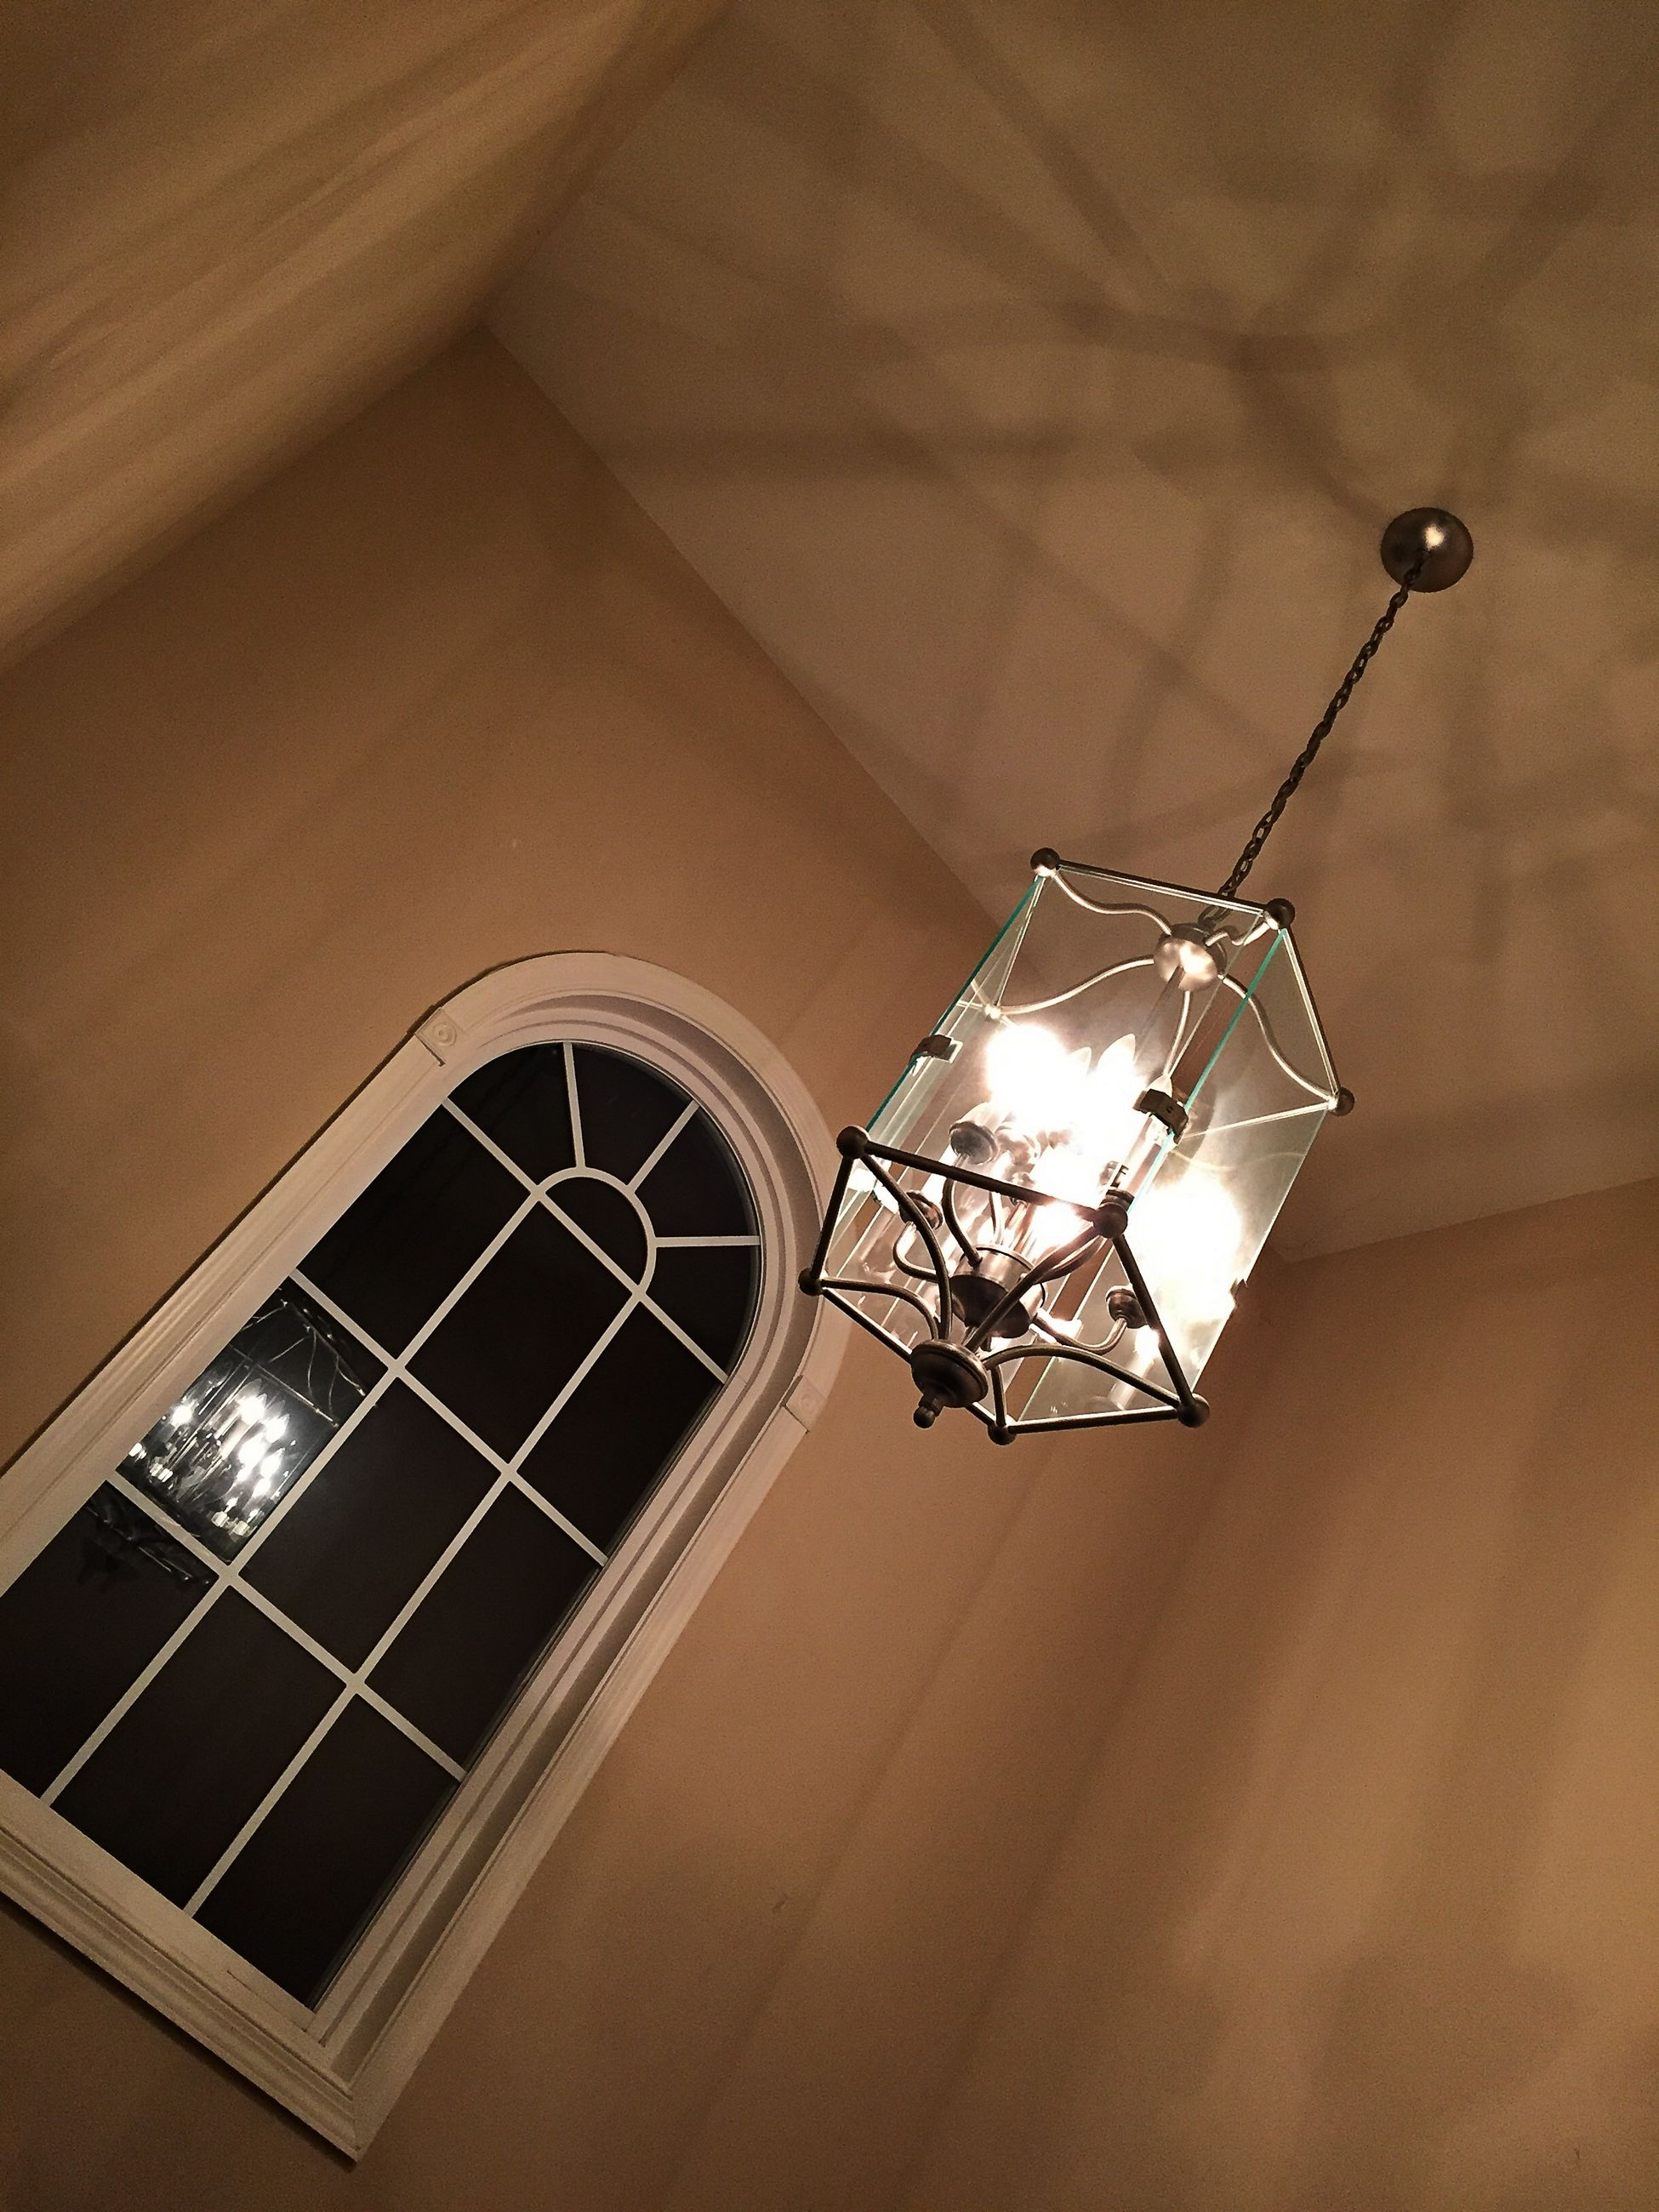 low angle view, illuminated, lighting equipment, architecture, built structure, indoors, ceiling, hanging, electricity, electric lamp, electric light, decoration, night, building exterior, no people, chandelier, light bulb, glowing, directly below, window